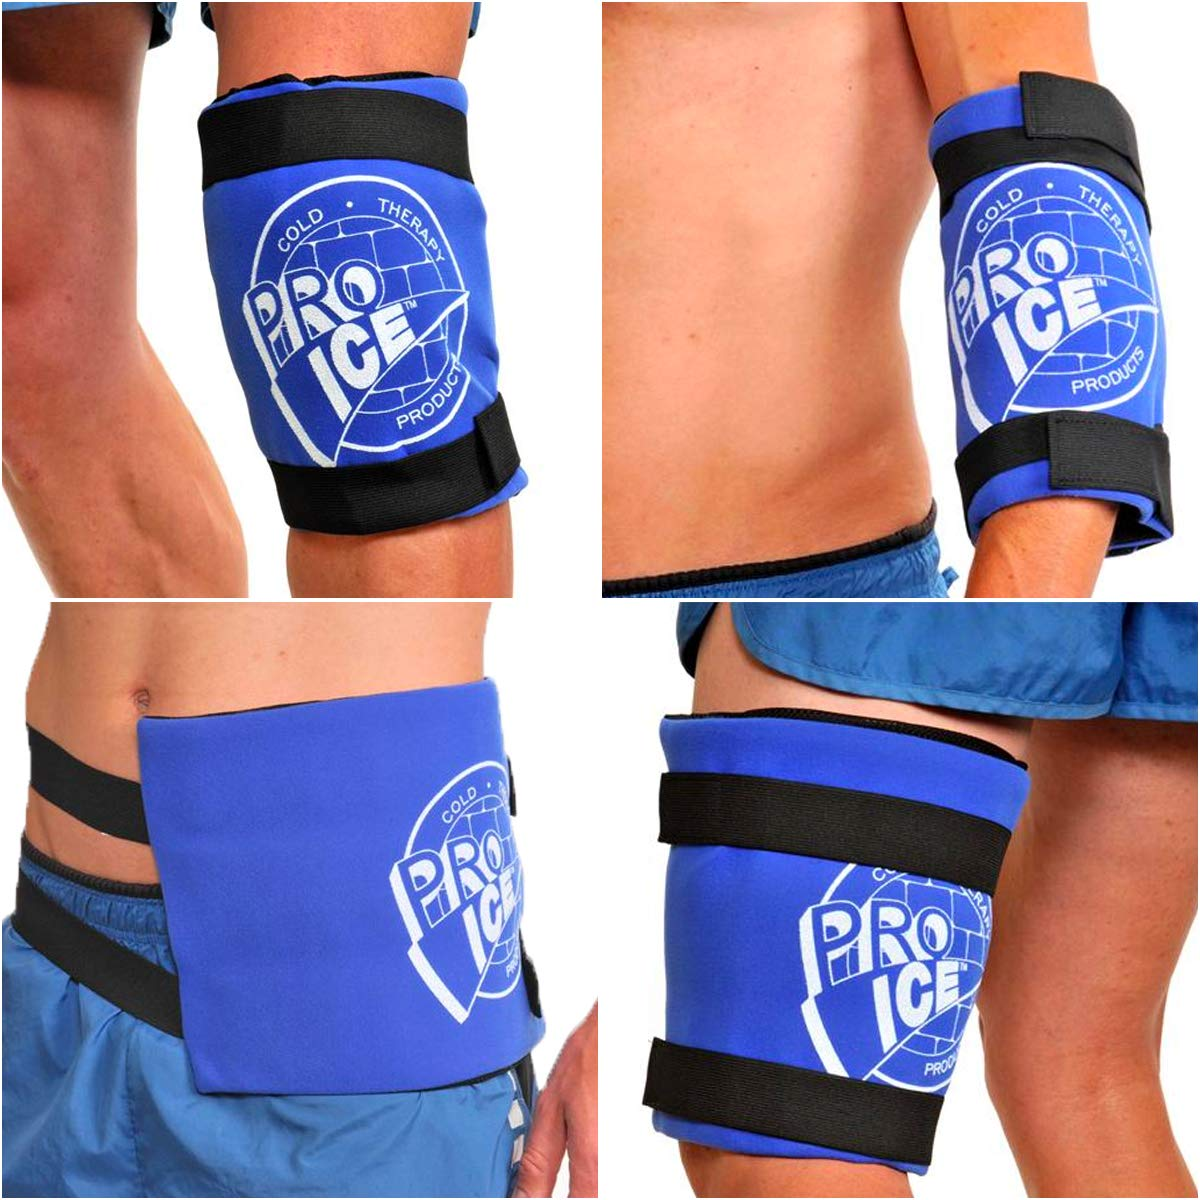 Pro Ice Knee Hip or Back Real Ice Therapy Wrap Wearable Multi-purpose Icing Compression Support PI400 by PRO ICE COLD THERAPY PRODUCTS